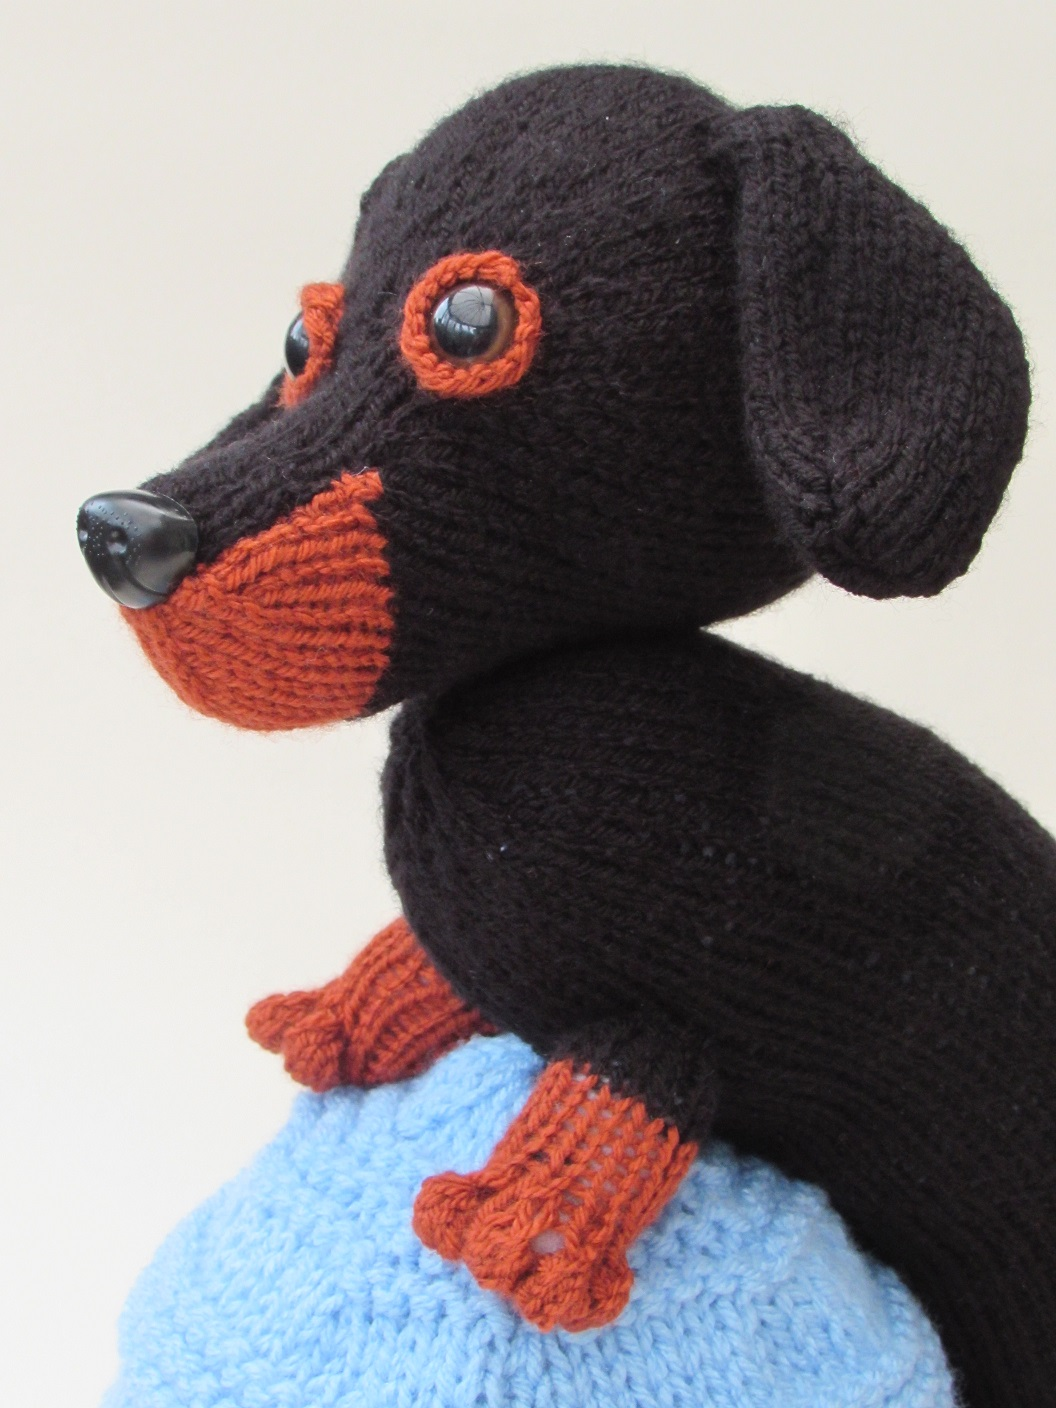 Knitting Patterns For Sausage Dogs : Dachshund tea cosy knitting pattern